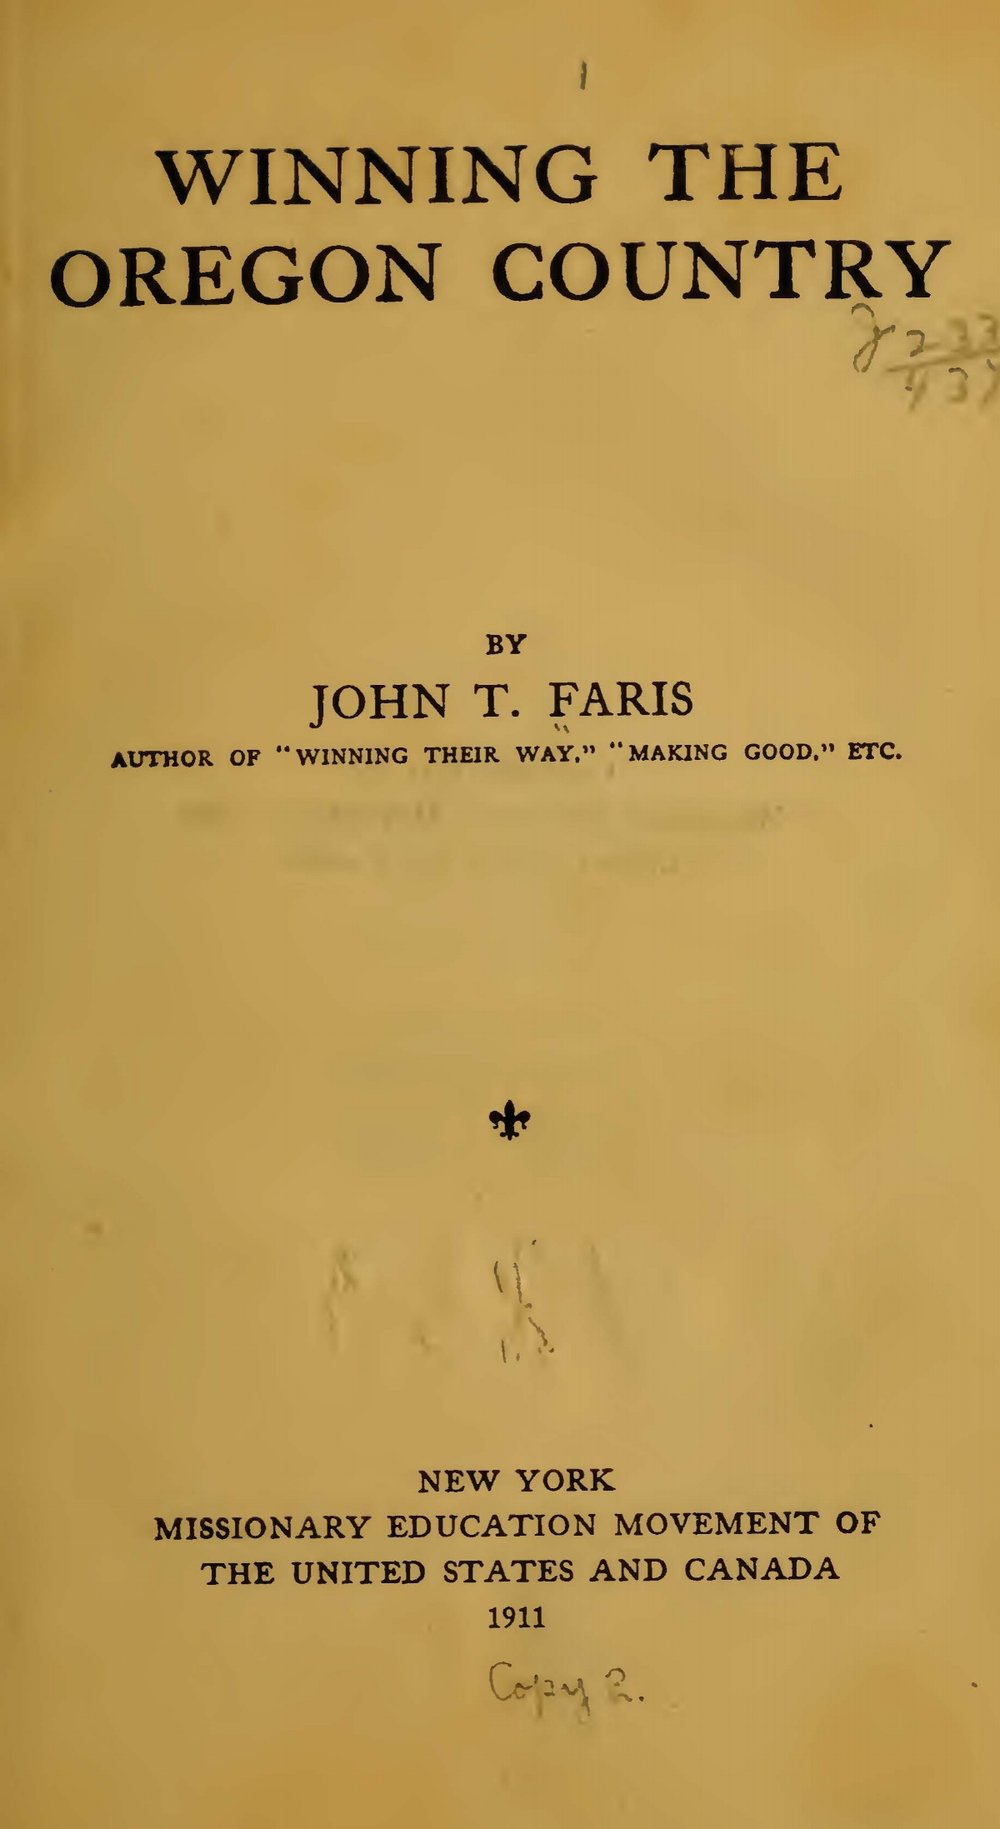 Faris, John Thomson, Winning the Oregon Country Title Page.jpg